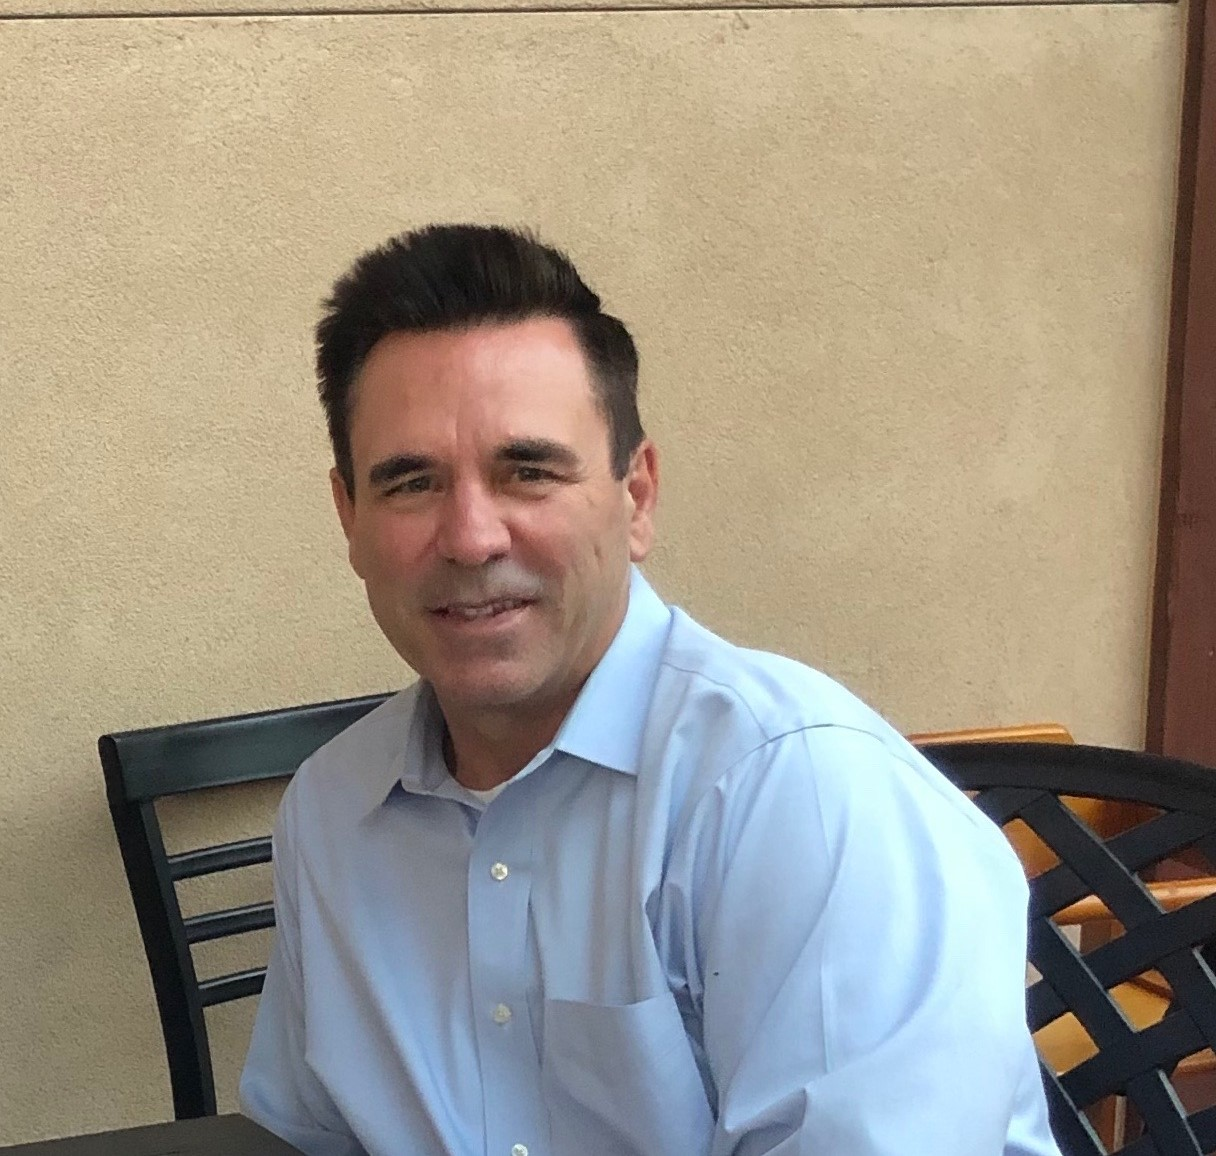 Jim joins Summit Fire Consulting